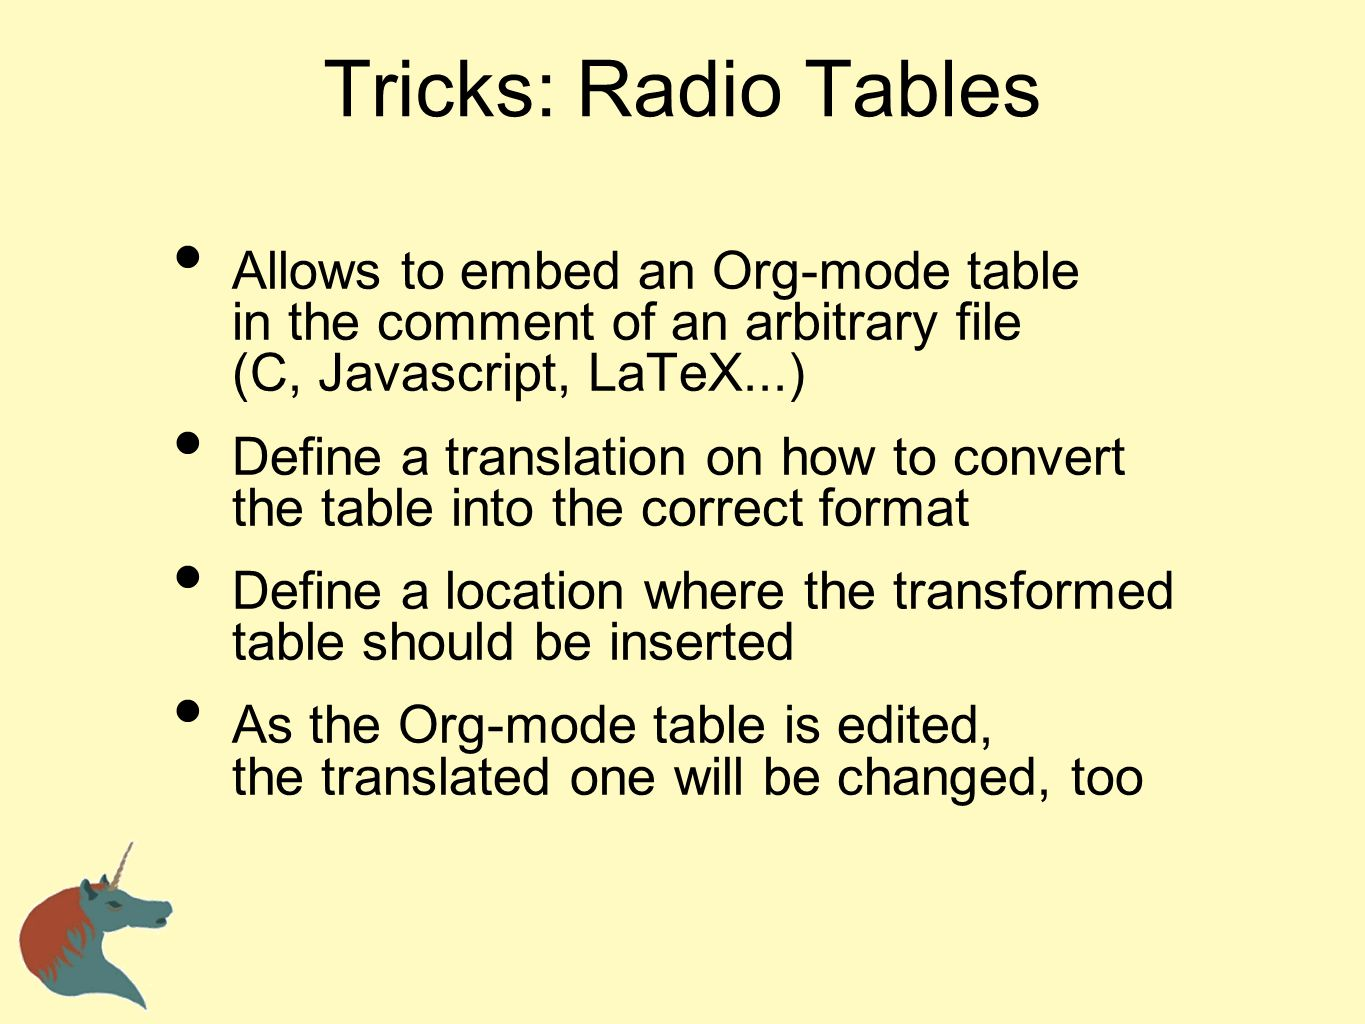 Tricks: Radio Tables Allows to embed an Org-mode table in the comment of an arbitrary file (C, Javascript, LaTeX...)